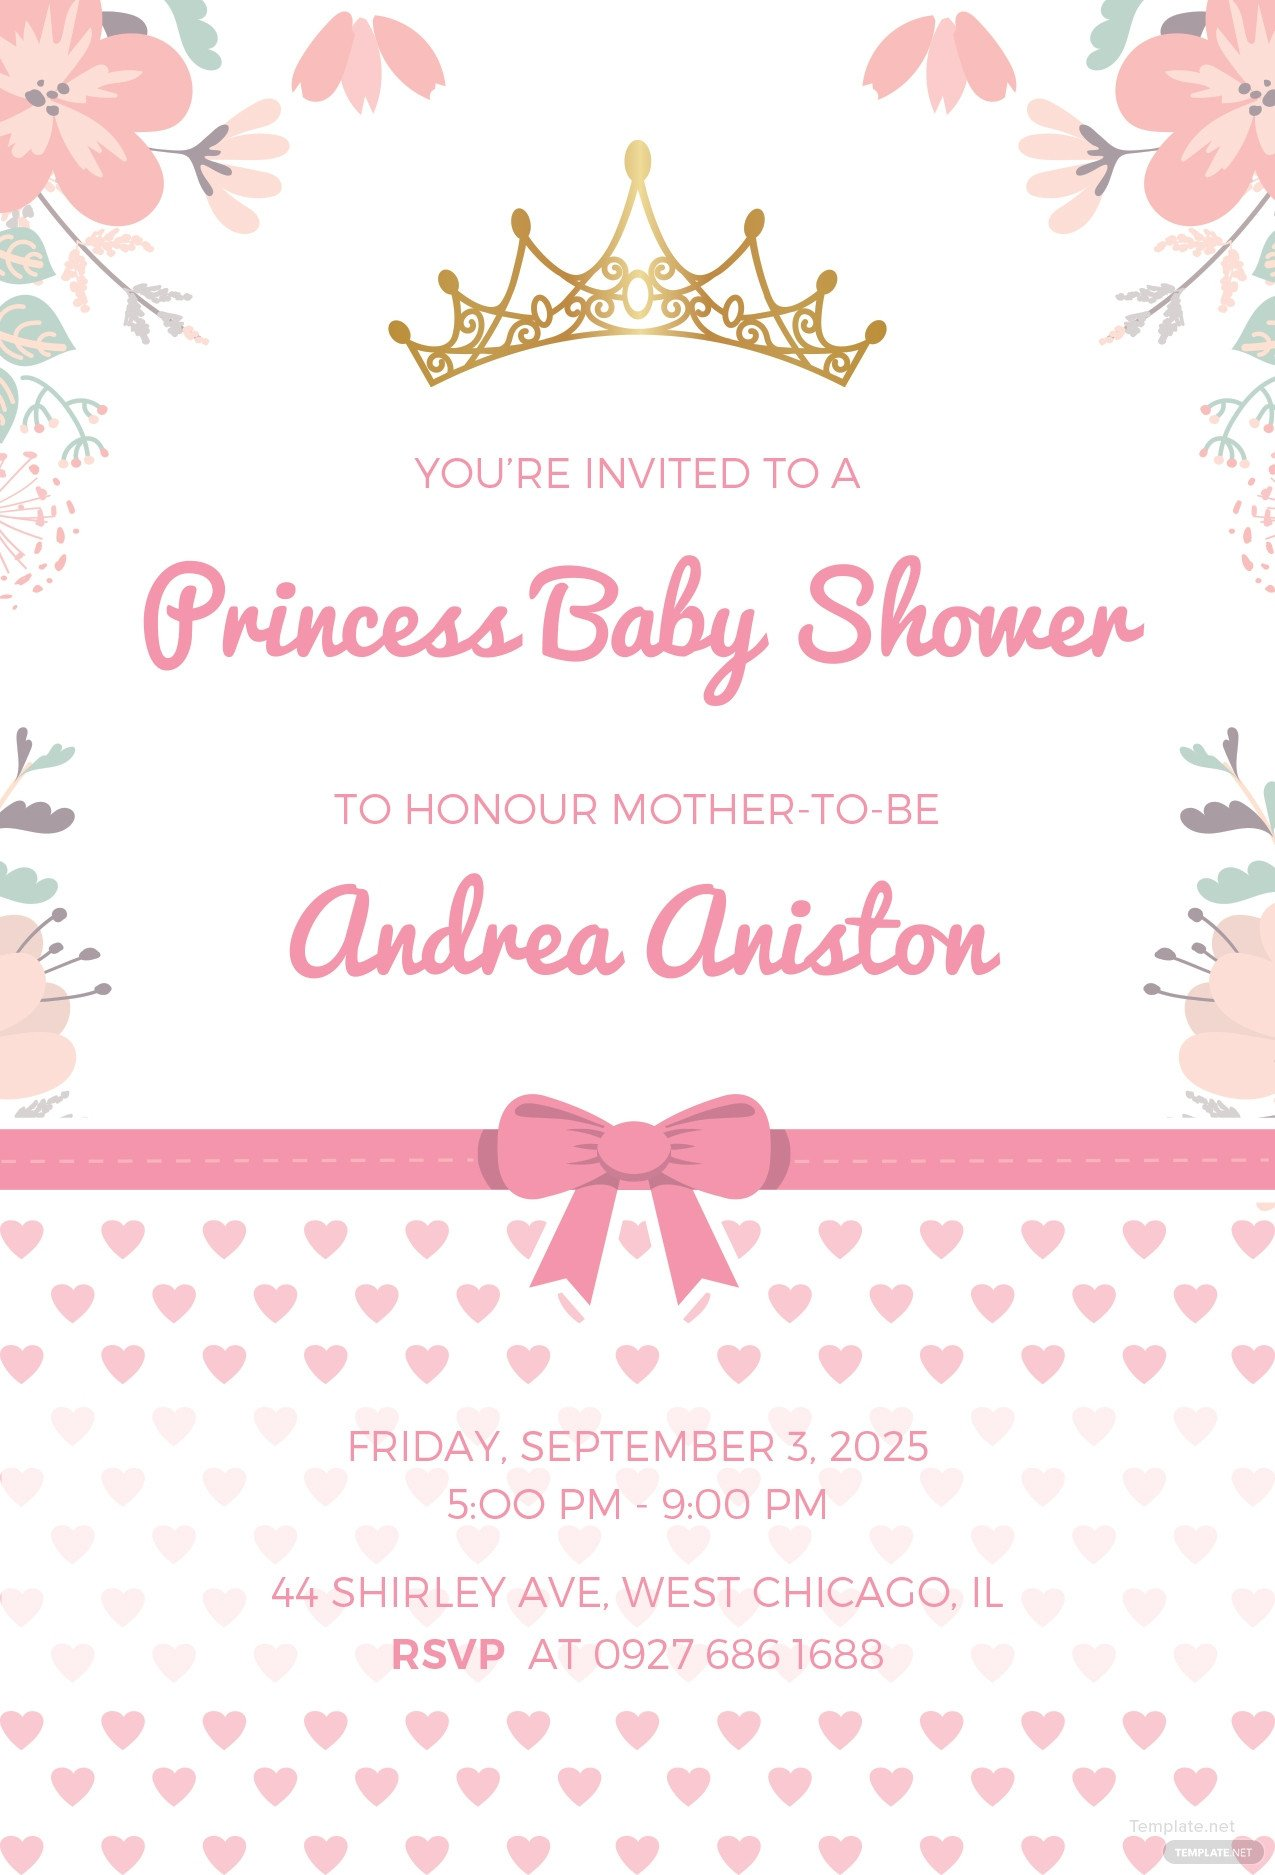 Princess Baby Shower Invitations Templates Free Princess Baby Shower Invitation Template In Microsoft